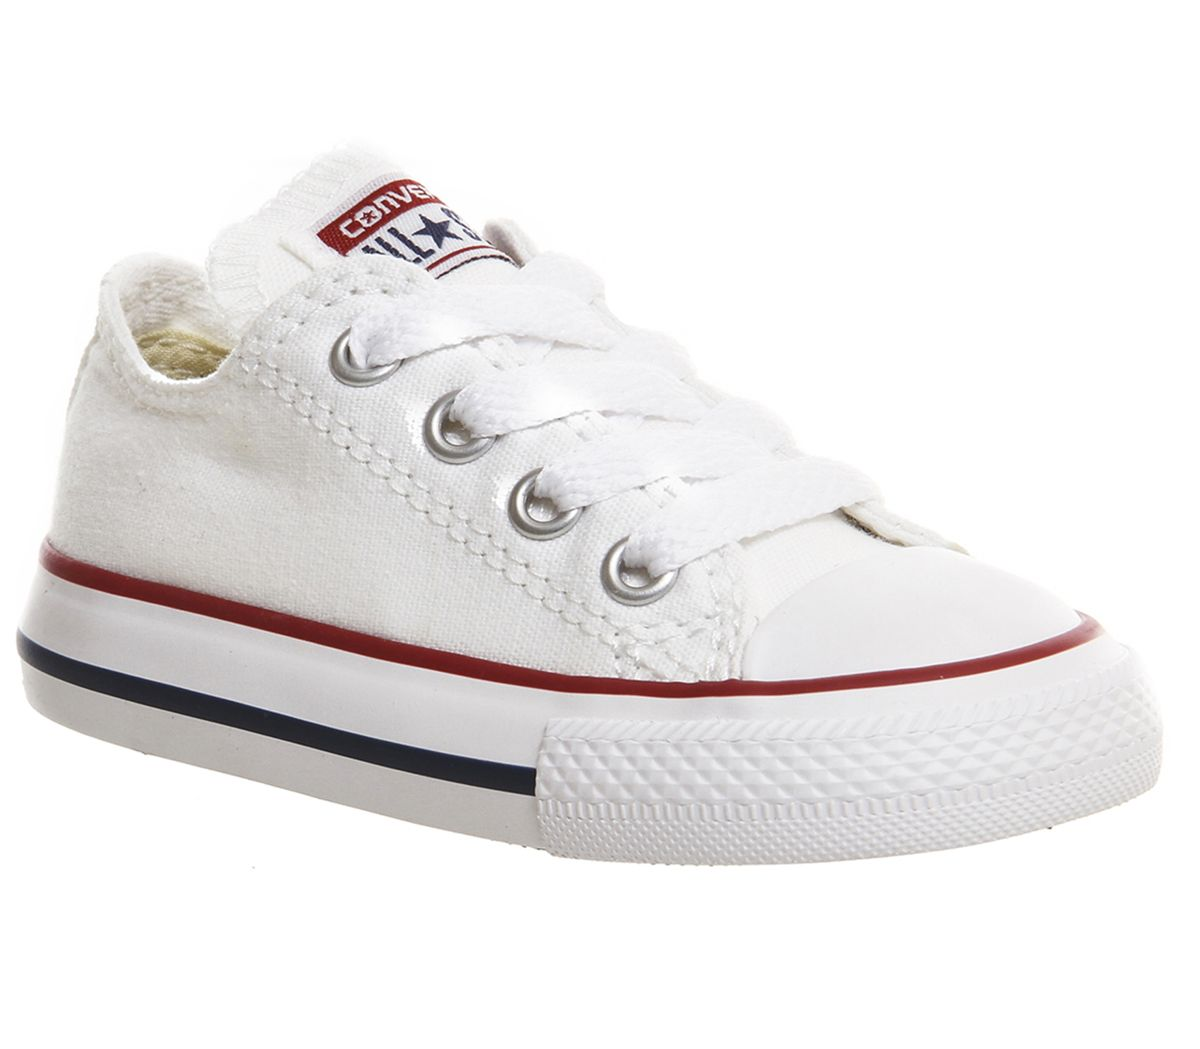 3210ea7a19d Converse All Star Low Infant Shoes White - Unisex